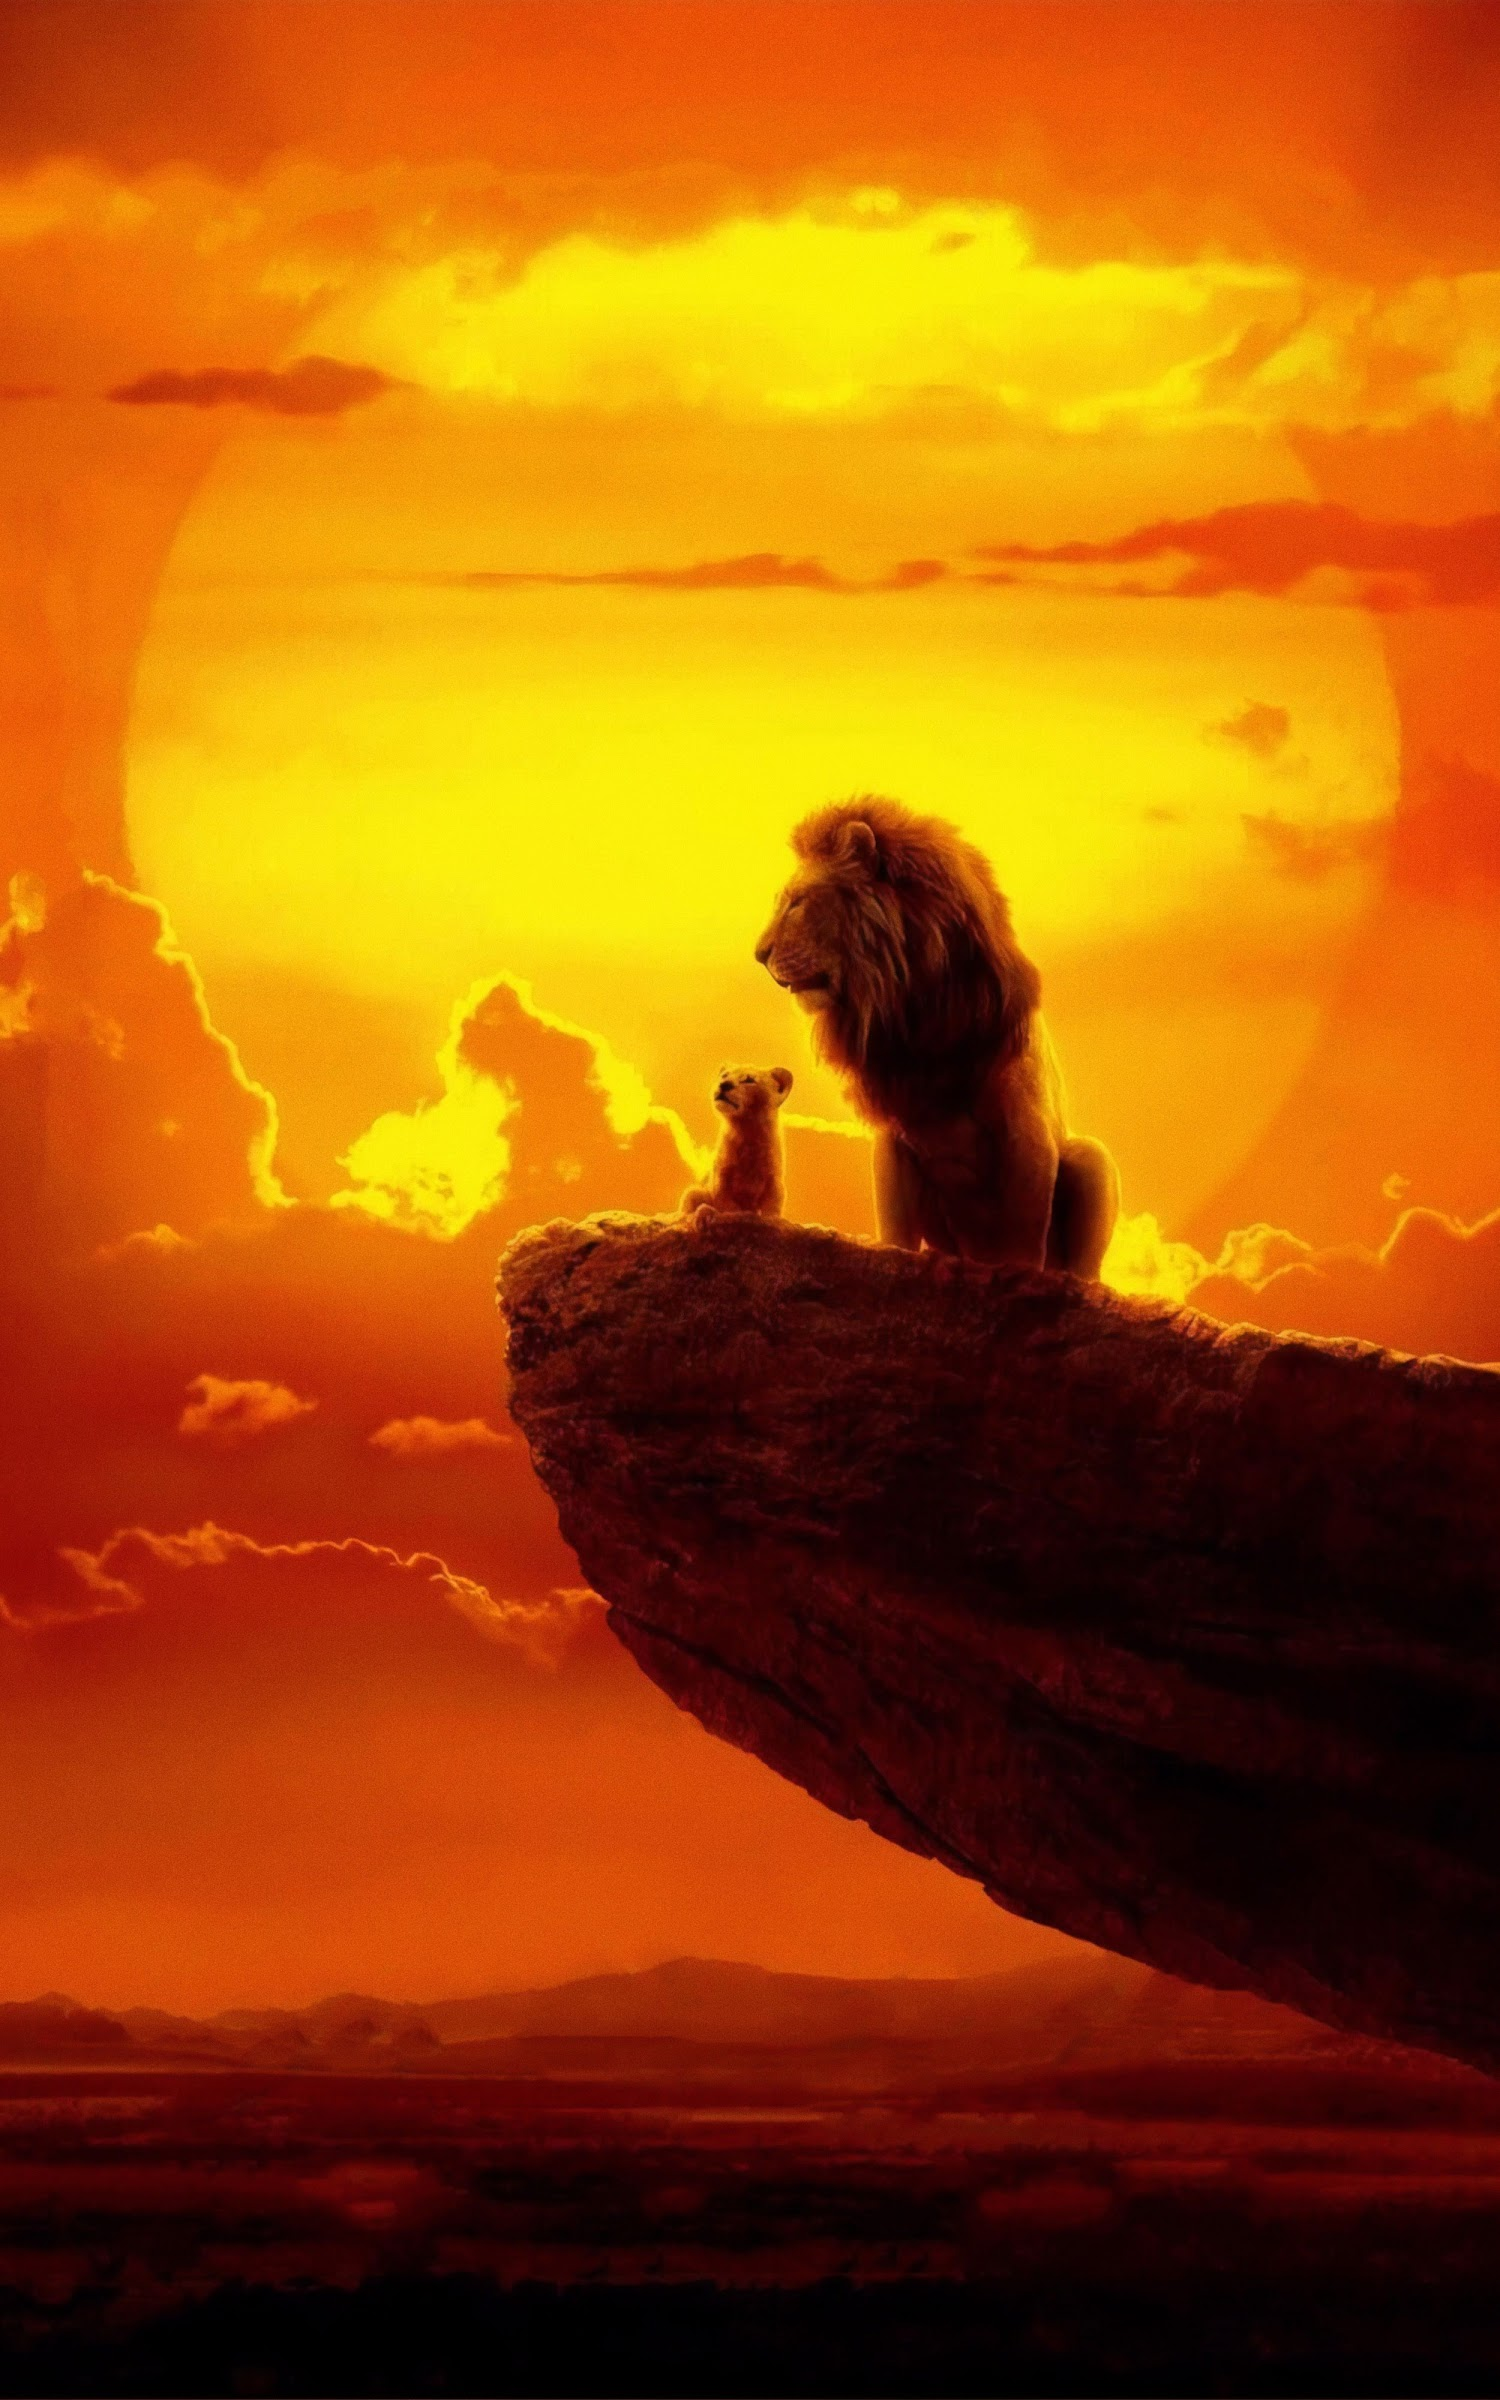 The Lion King 2019 Wallpaper 4k Movies Category Laginate